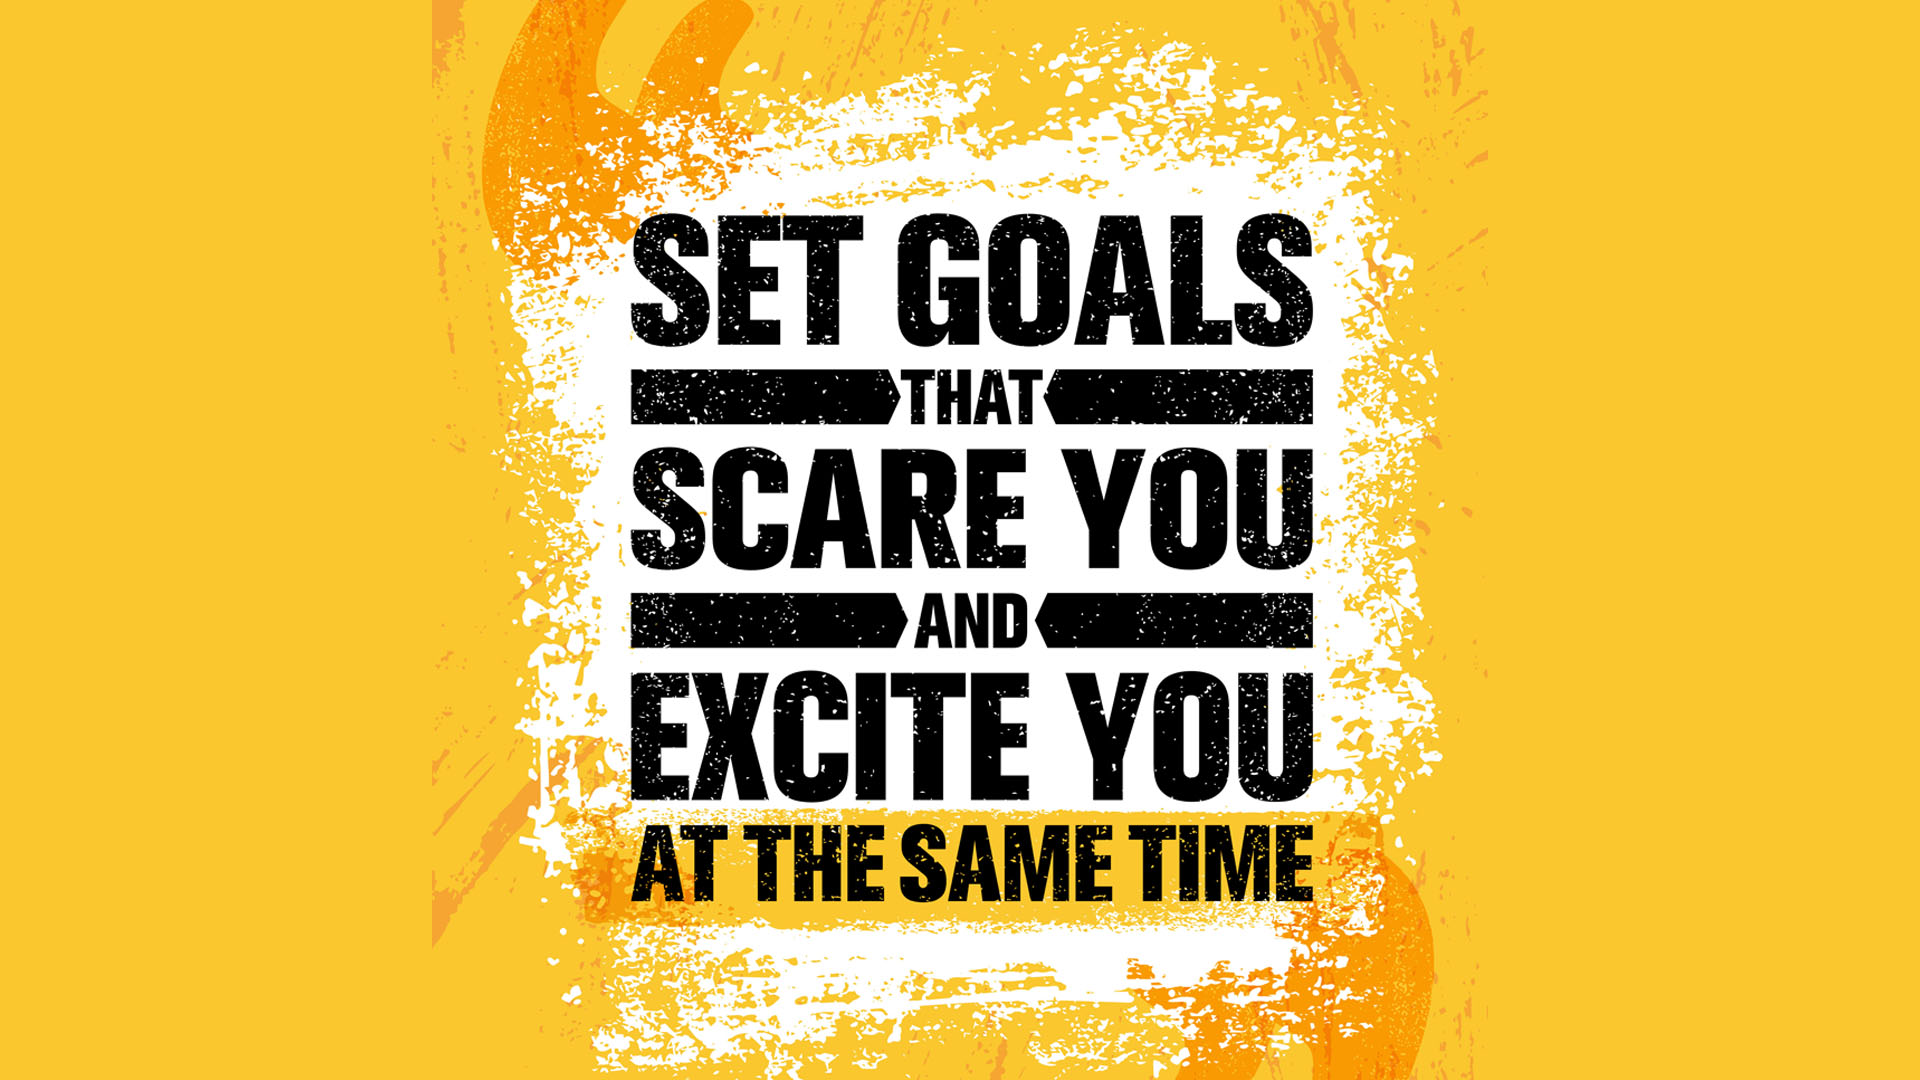 Set Goals That Scare You And Excite You At The Same Time